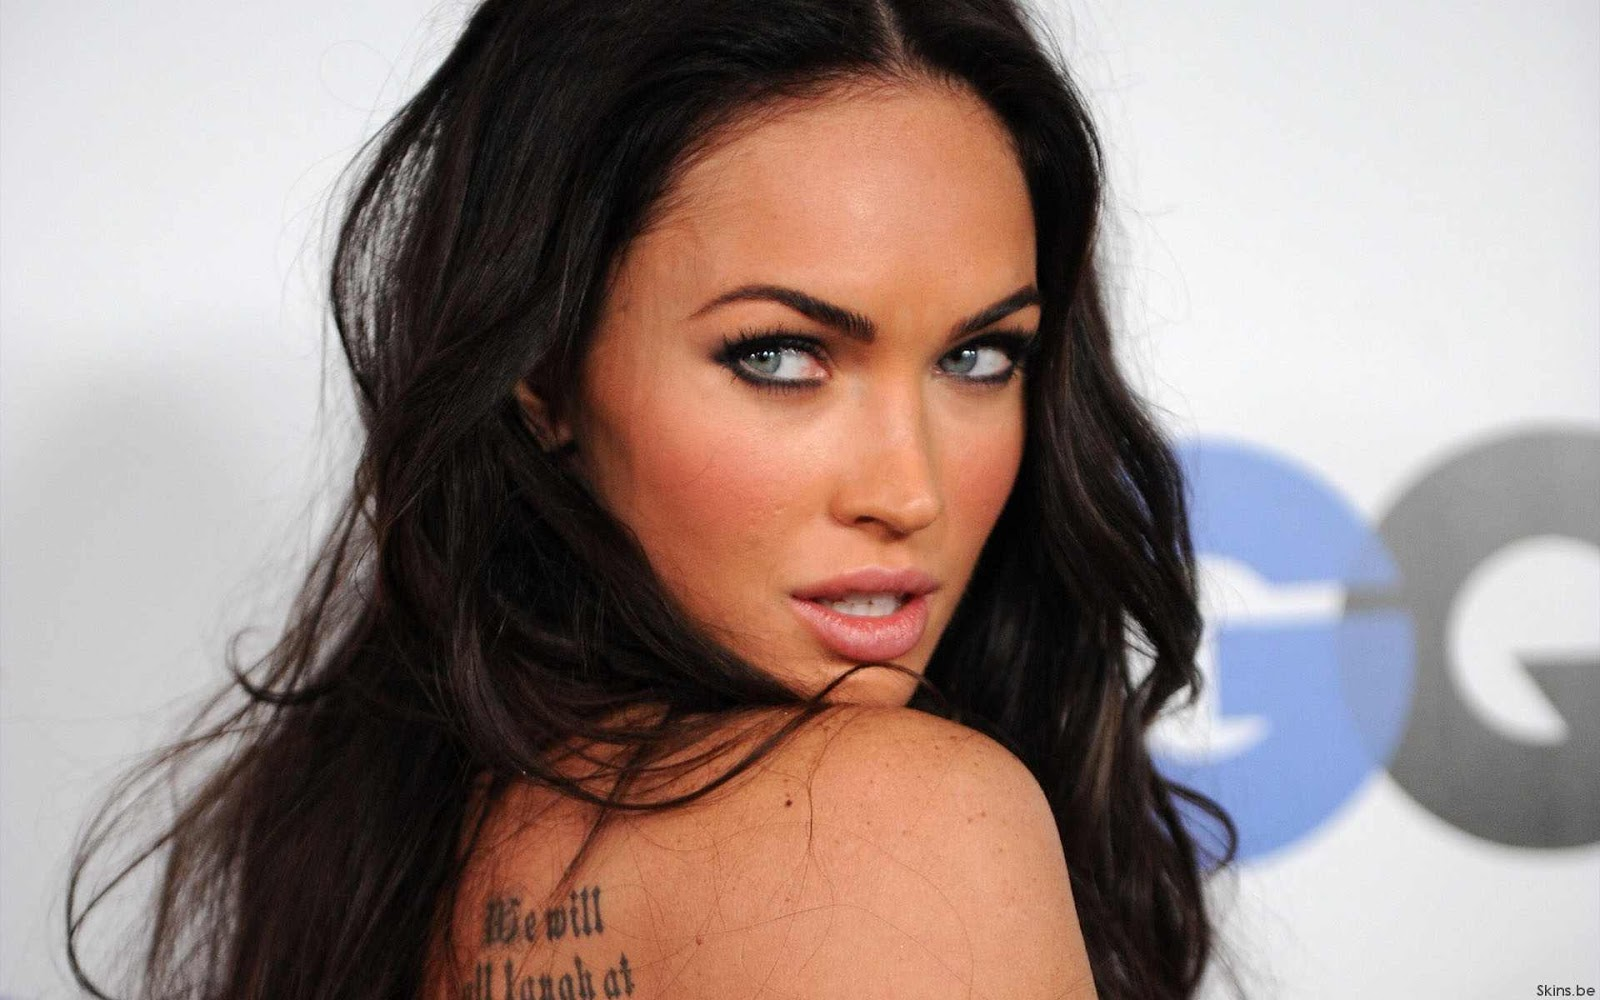 Hollywood Cellebrity news: Megan foxs biography and ...